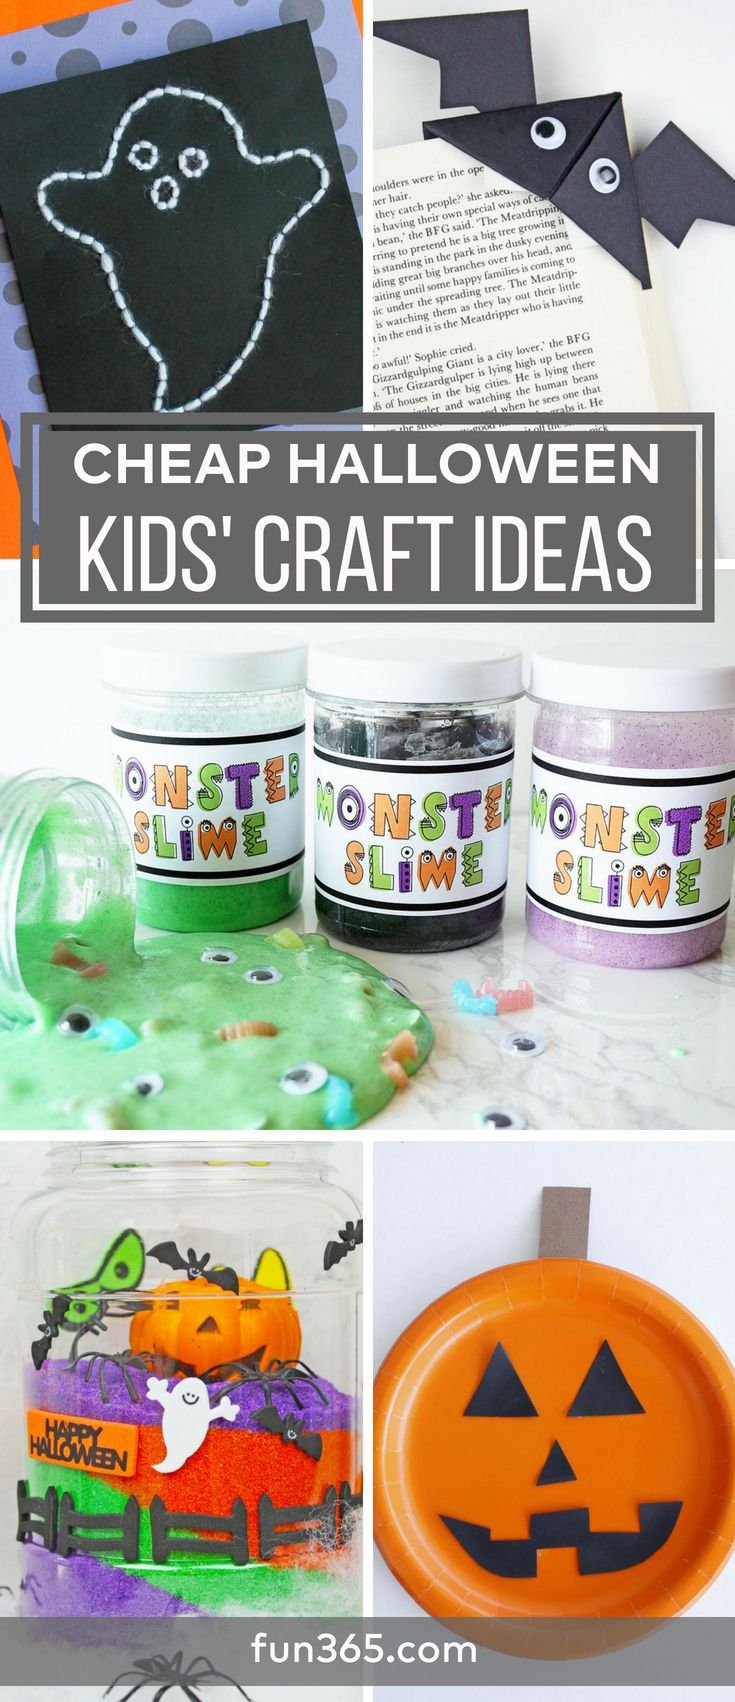 Keep Kids Occupied This Halloween With These Fun And Cheap Kids